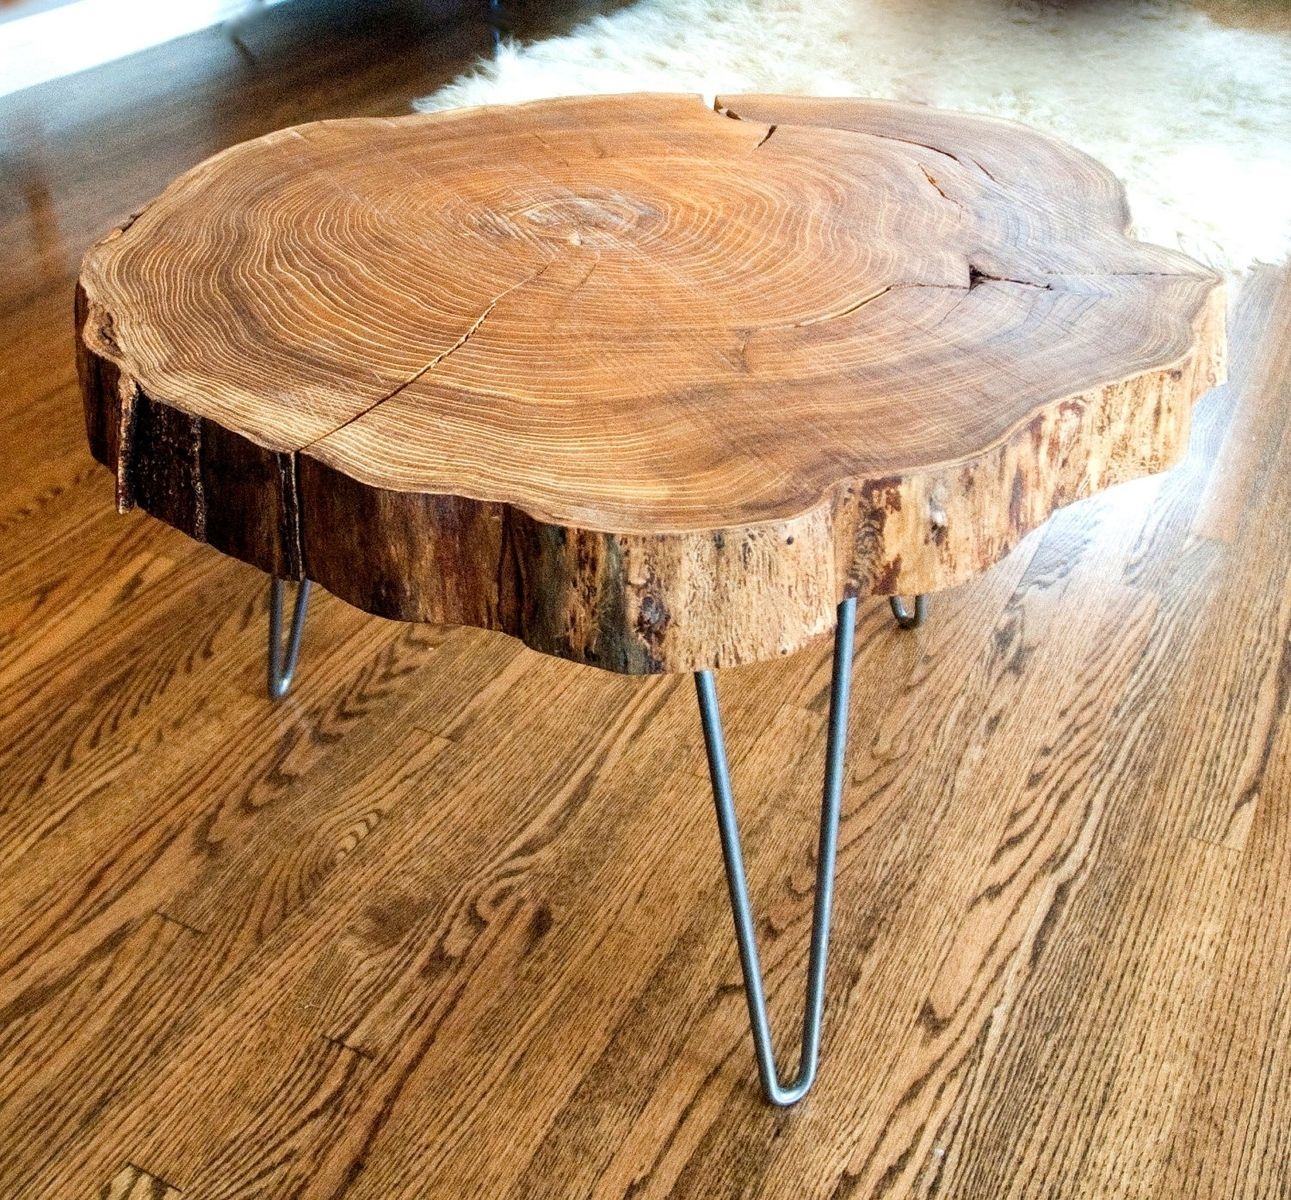 Best 25+ Tree Trunk Table Ideas On Pinterest | Tree Trunk Coffee Table, Tree  Table And Tree Stump Table